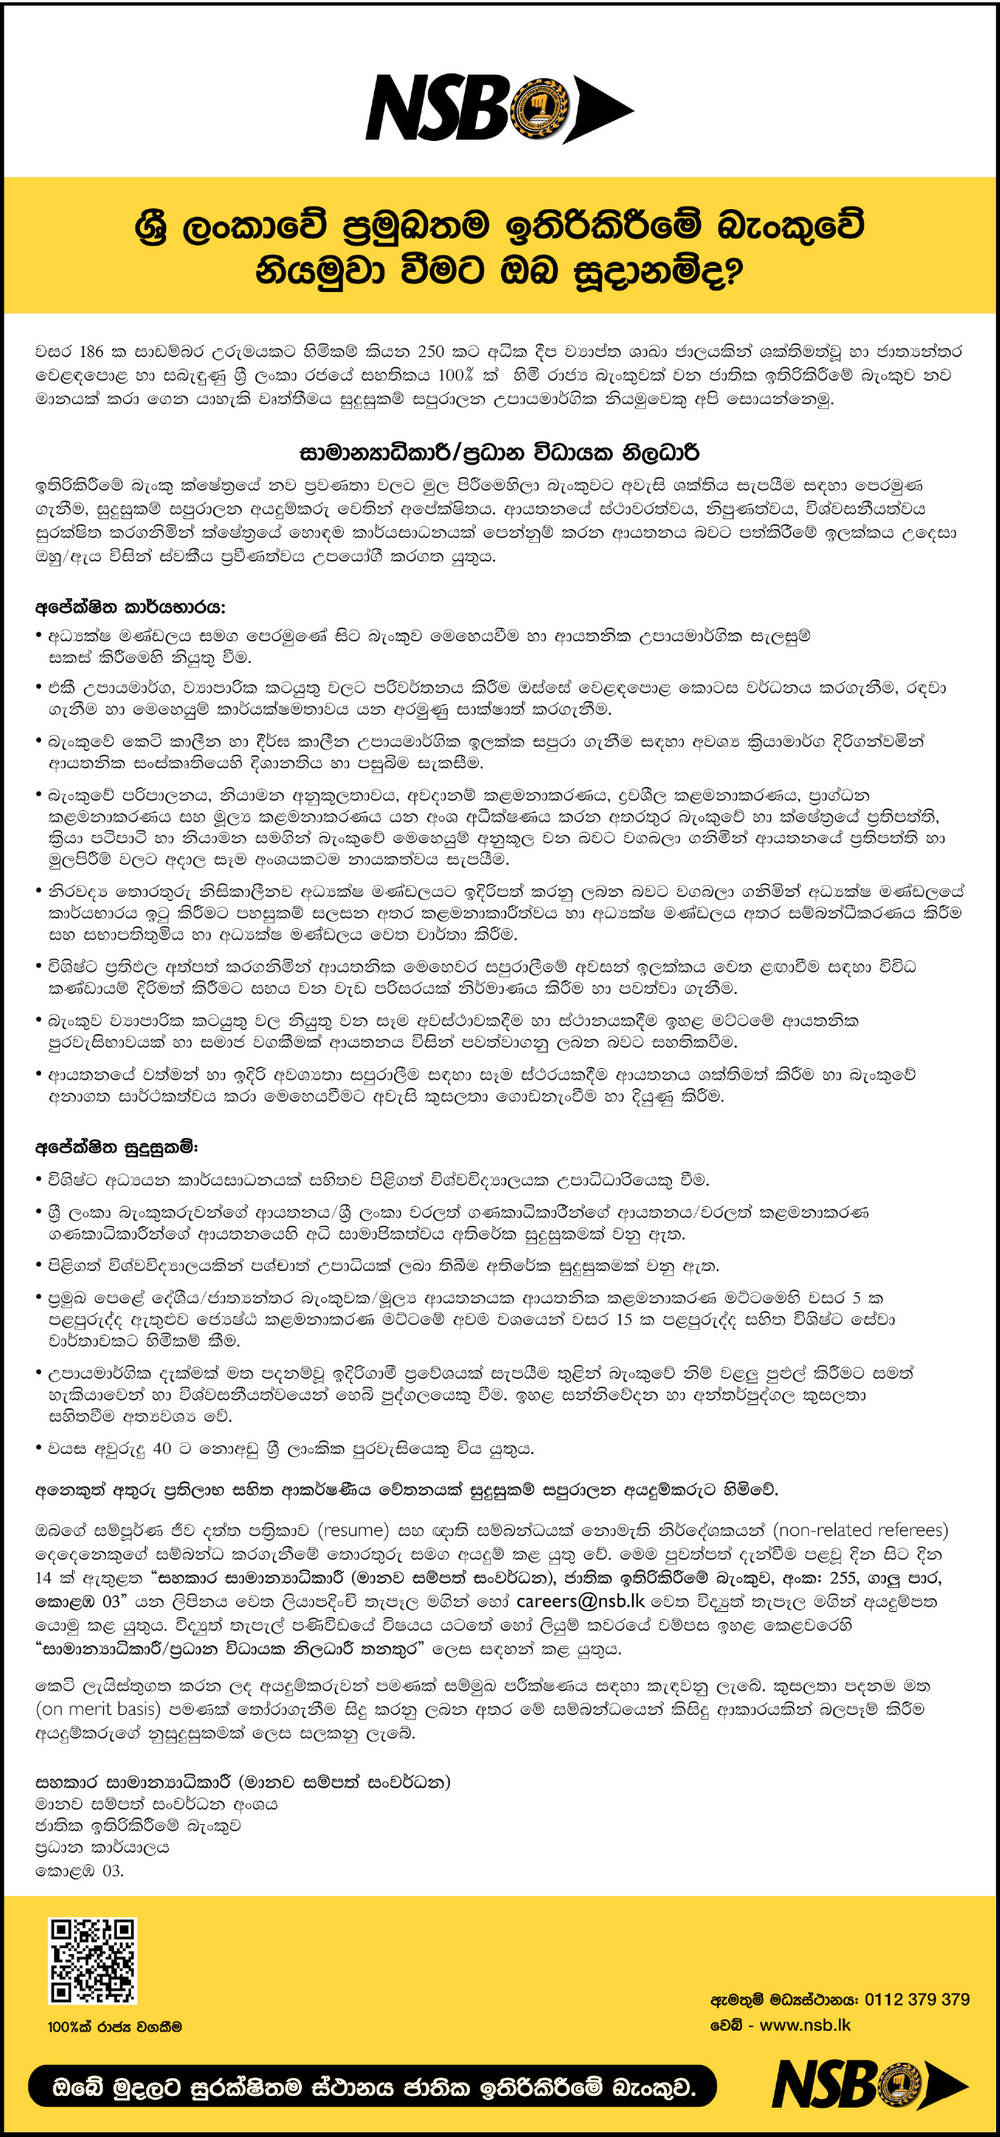 General Manager/Chief Executive Officer - National Savings Bank